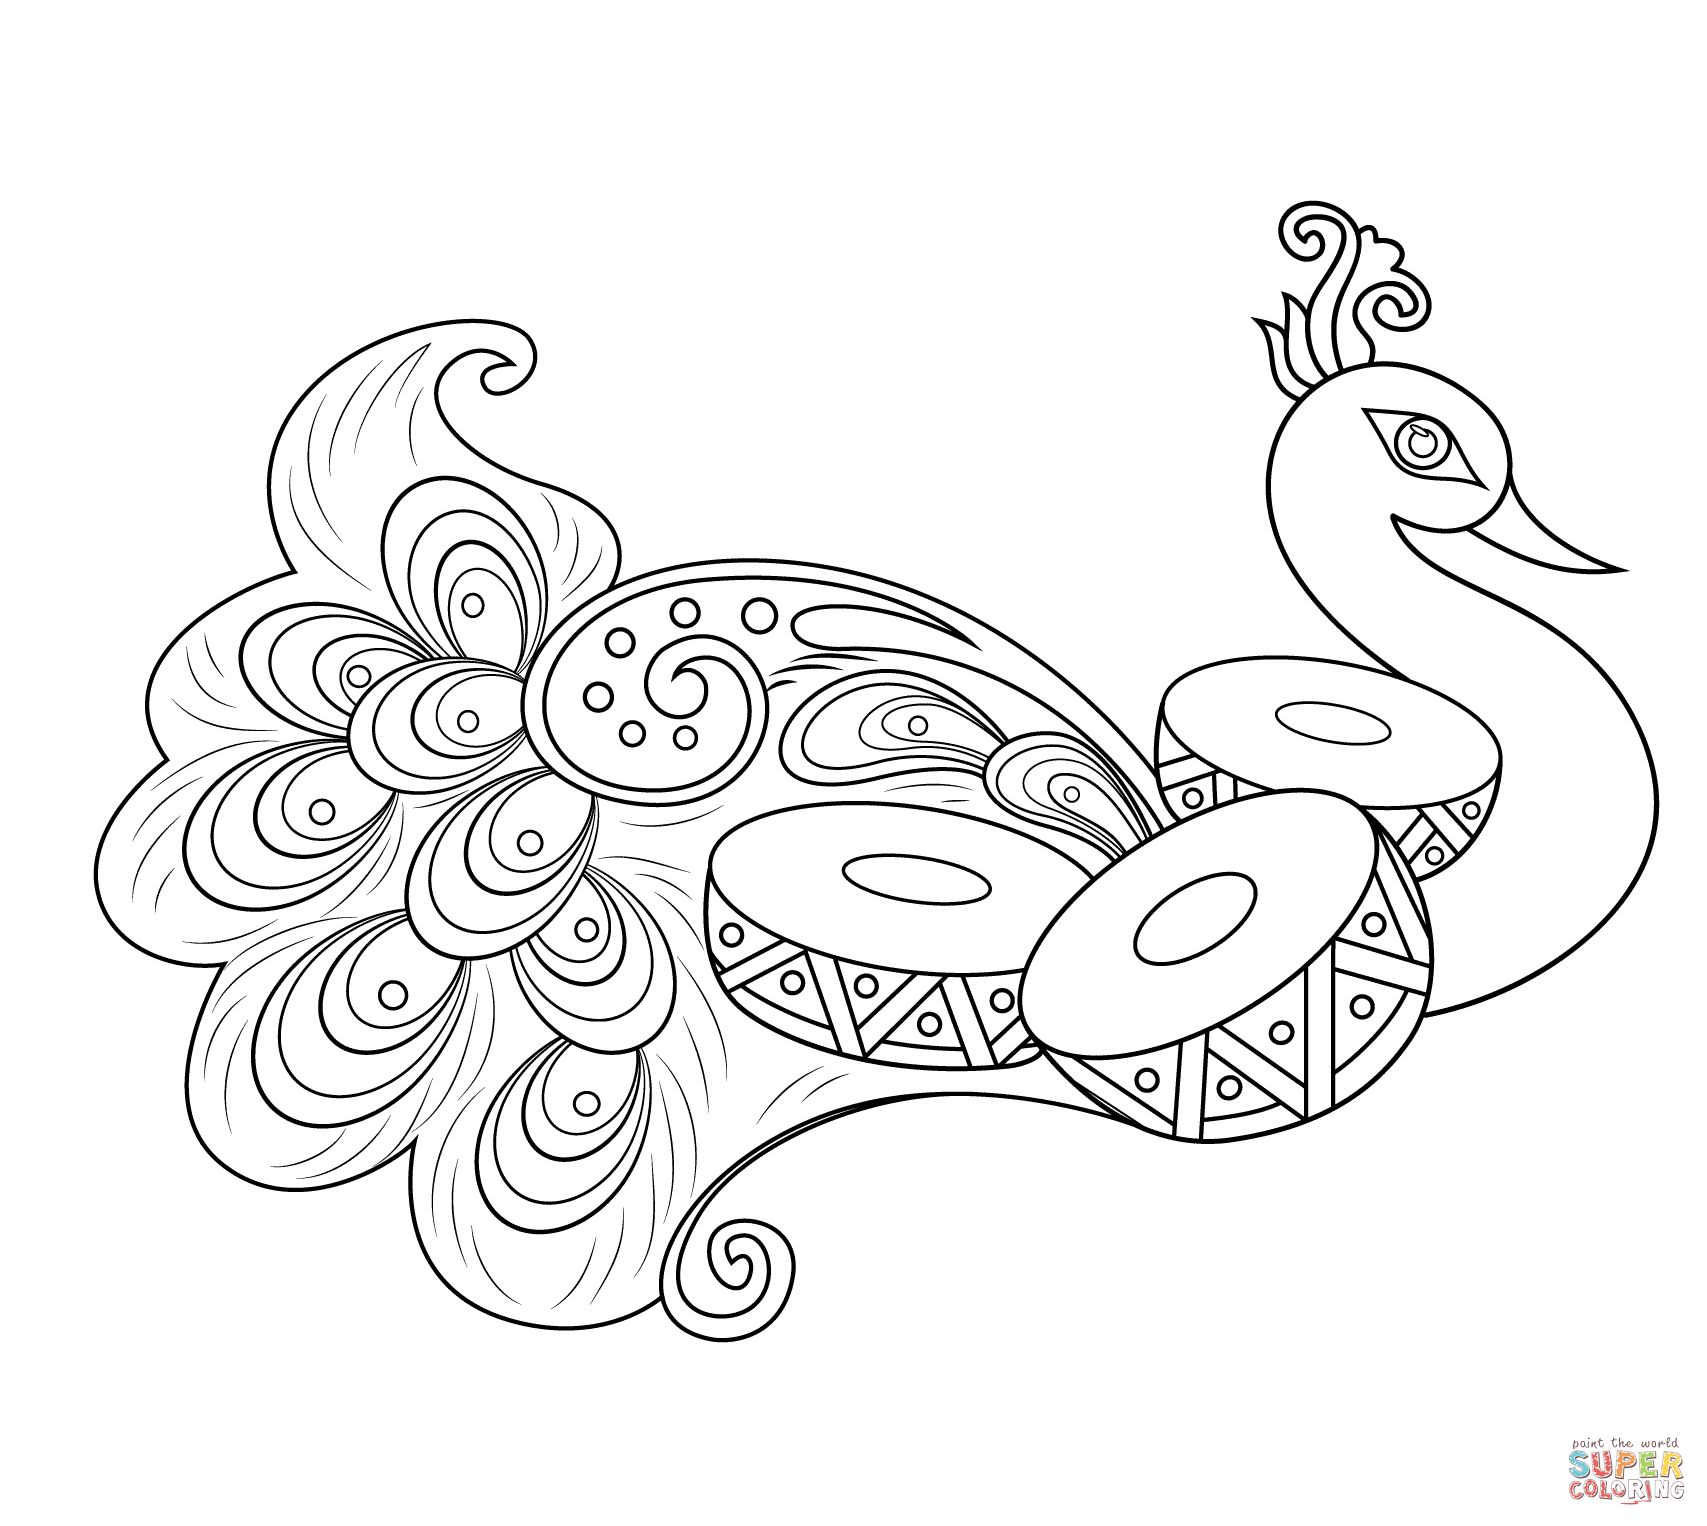 easy printable peacock coloring pages peacock coloring pages getcoloringpagescom coloring pages printable easy peacock